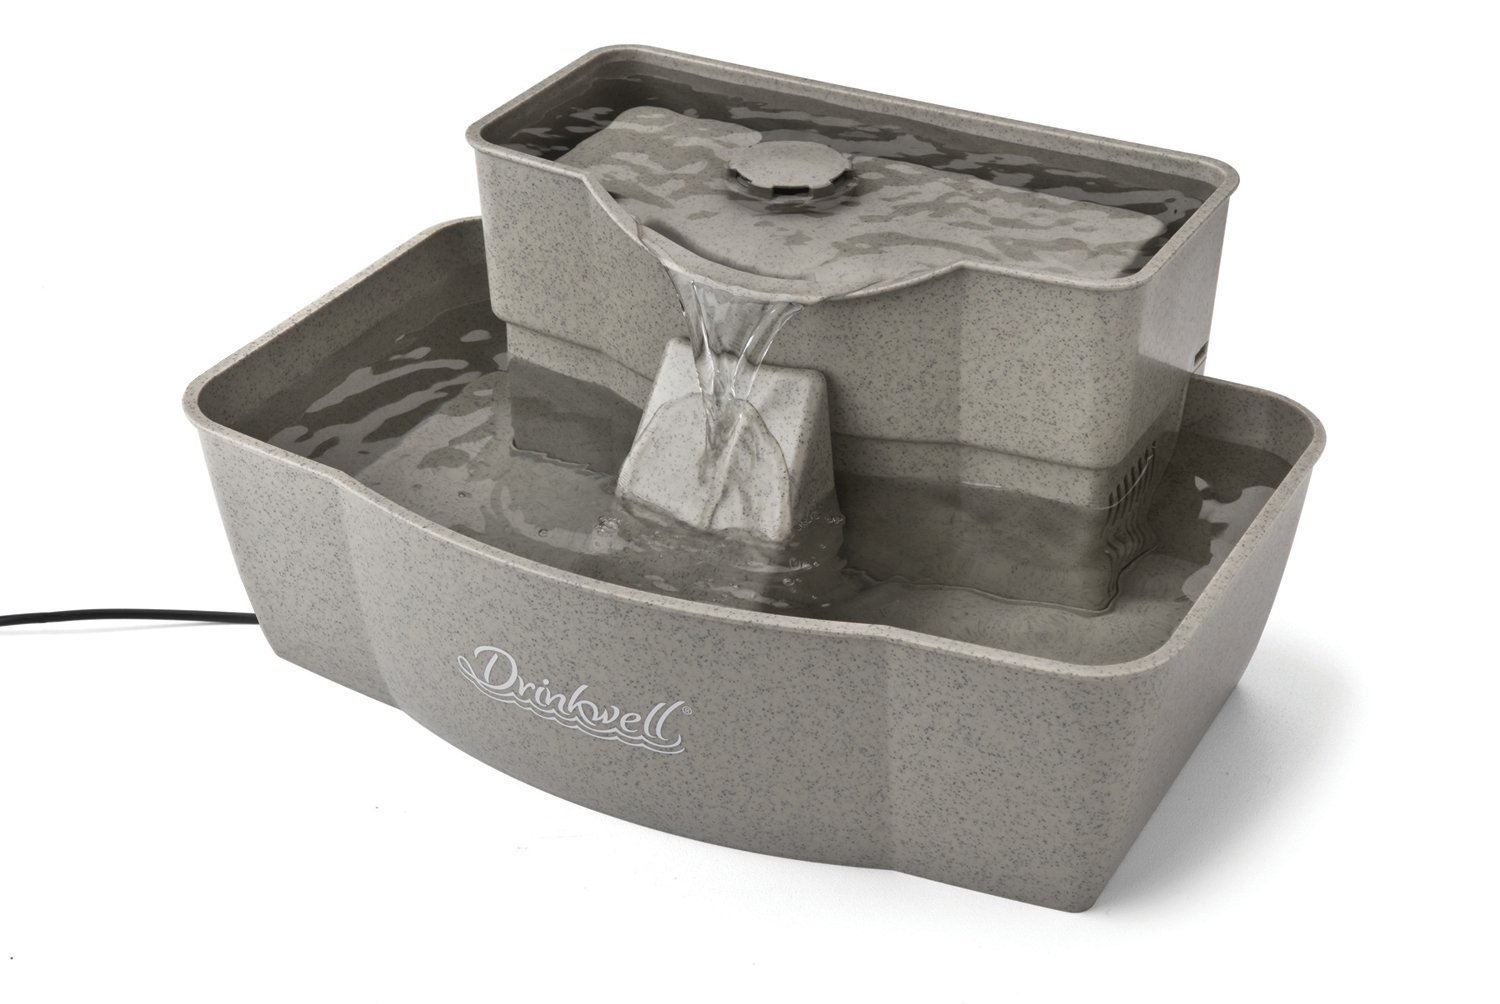 PetSafe Drinkwell Multi-Tier Pet Fountain